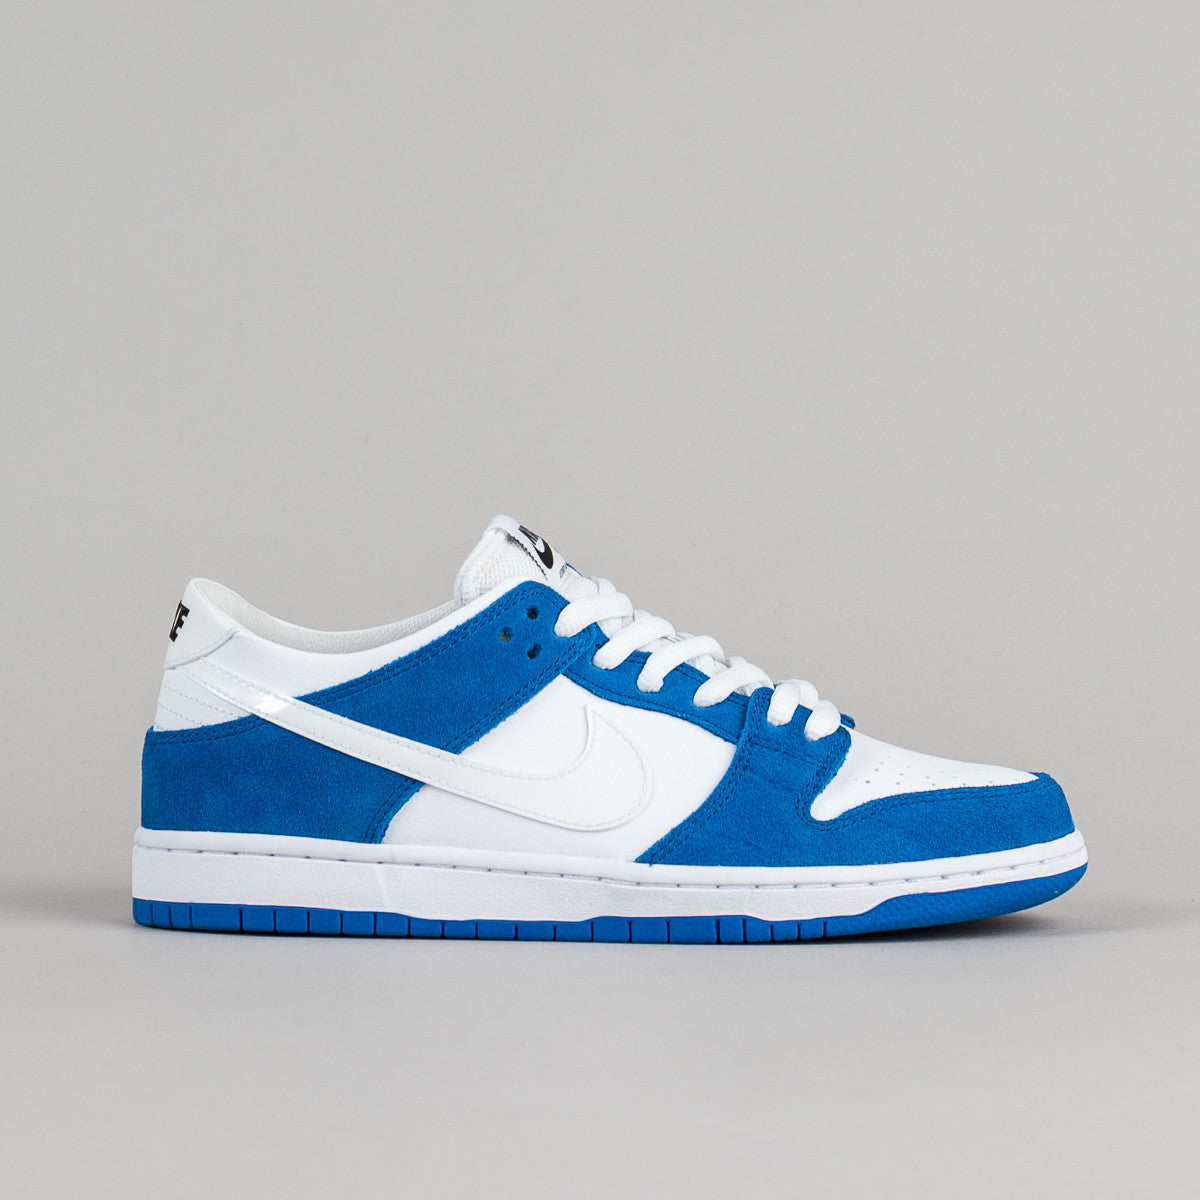 Nike SB Dunk Low Pro Ishod Wair Shoes - Blue Spark / White - Black